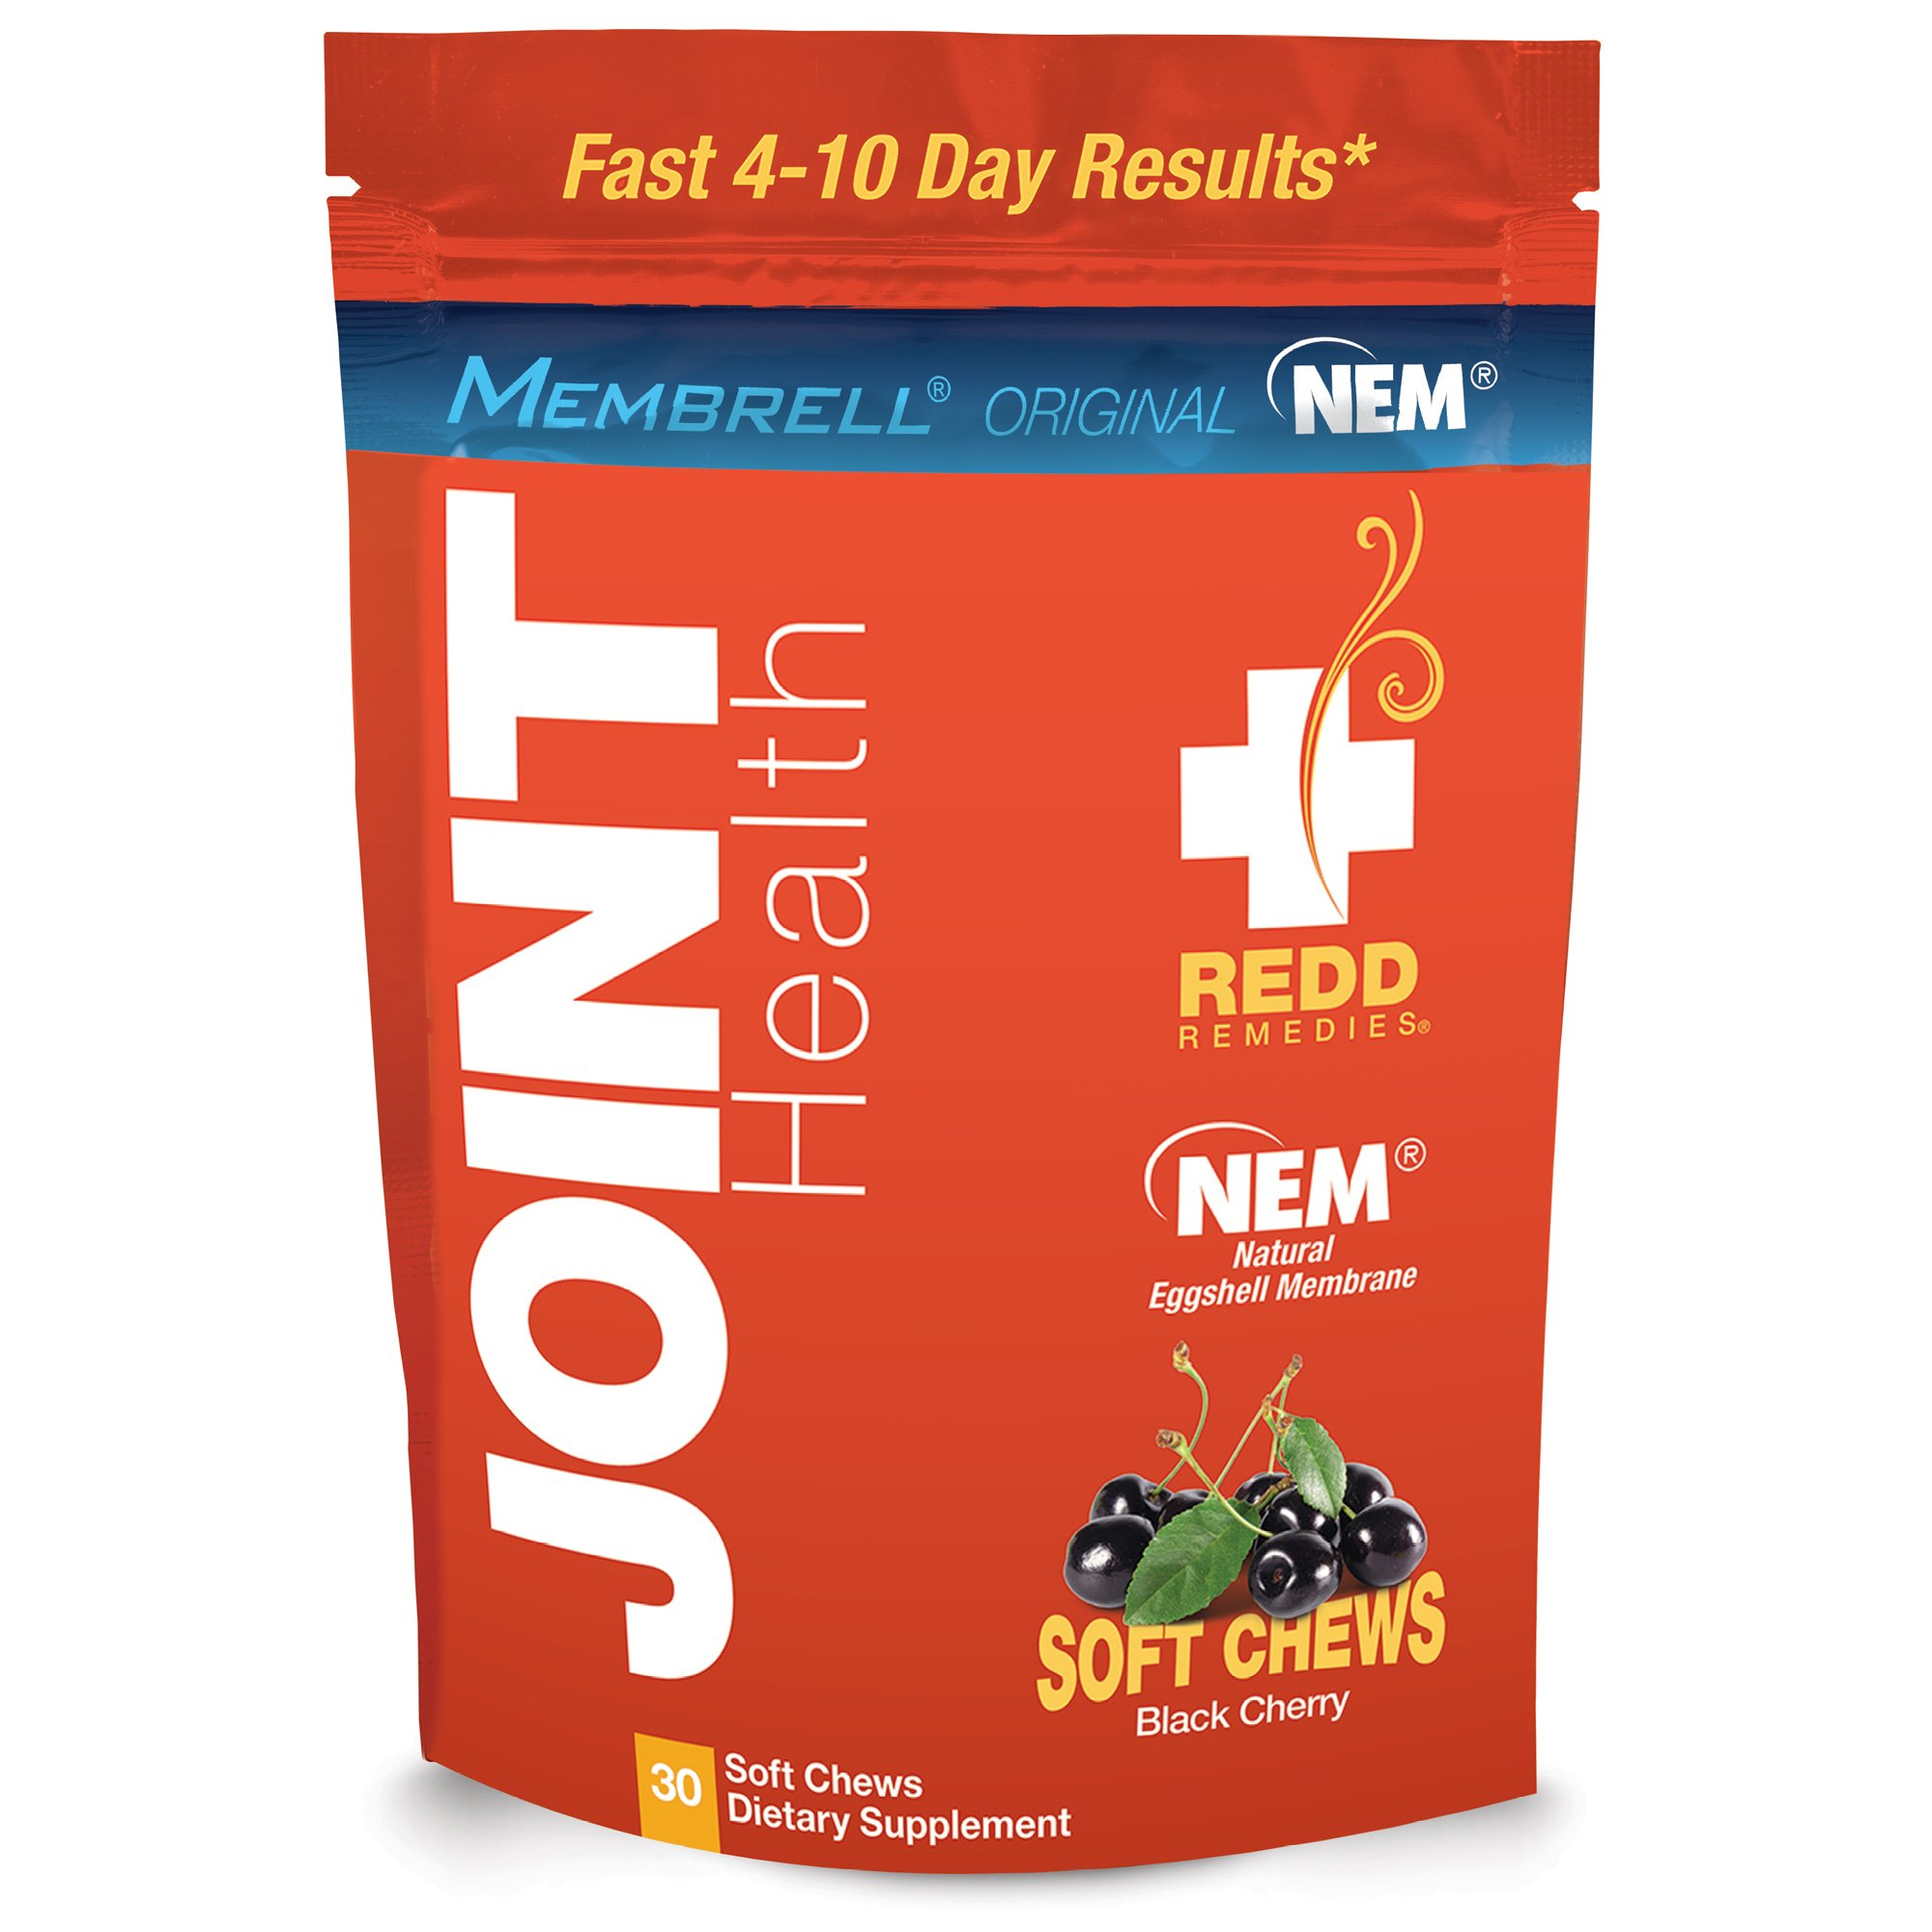 Redd Remedies - Joint Health Original, Helps Strengthen Connective Tissue and Cartilage, Black Cherry, 30 Soft Chews